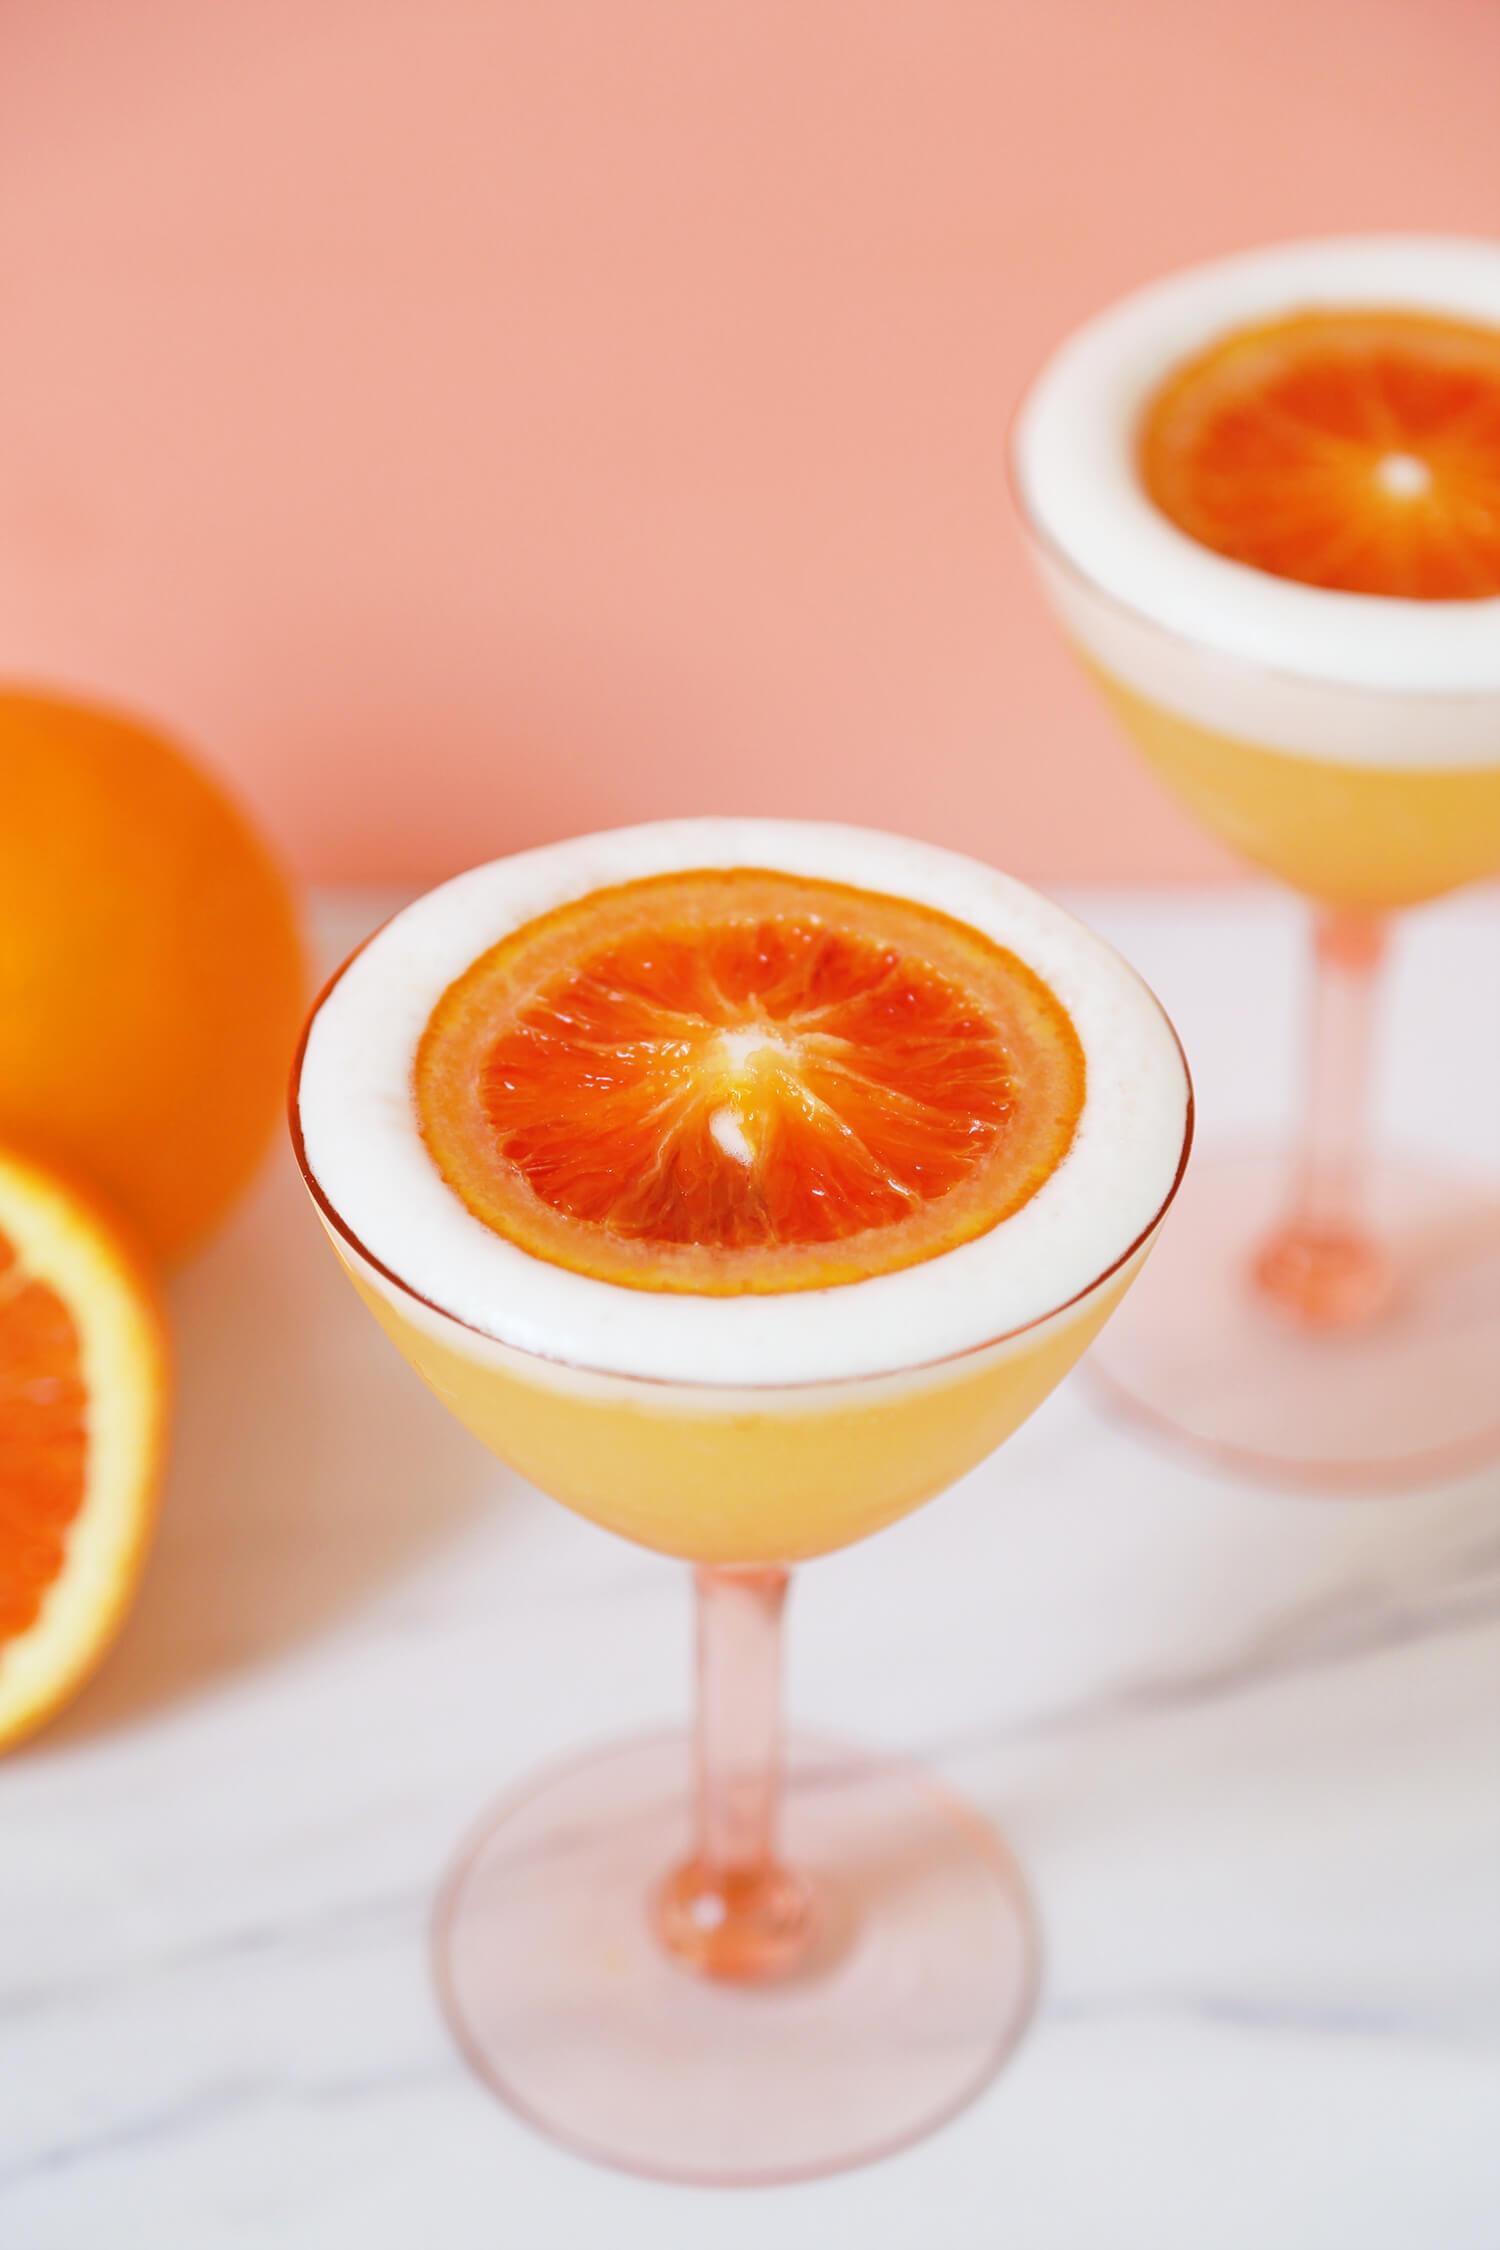 Heavenly, complete with a halo of orange. Gorgeous photo snagged from  http://arsenic-lace.com/cara-cara-mezcal-sour/